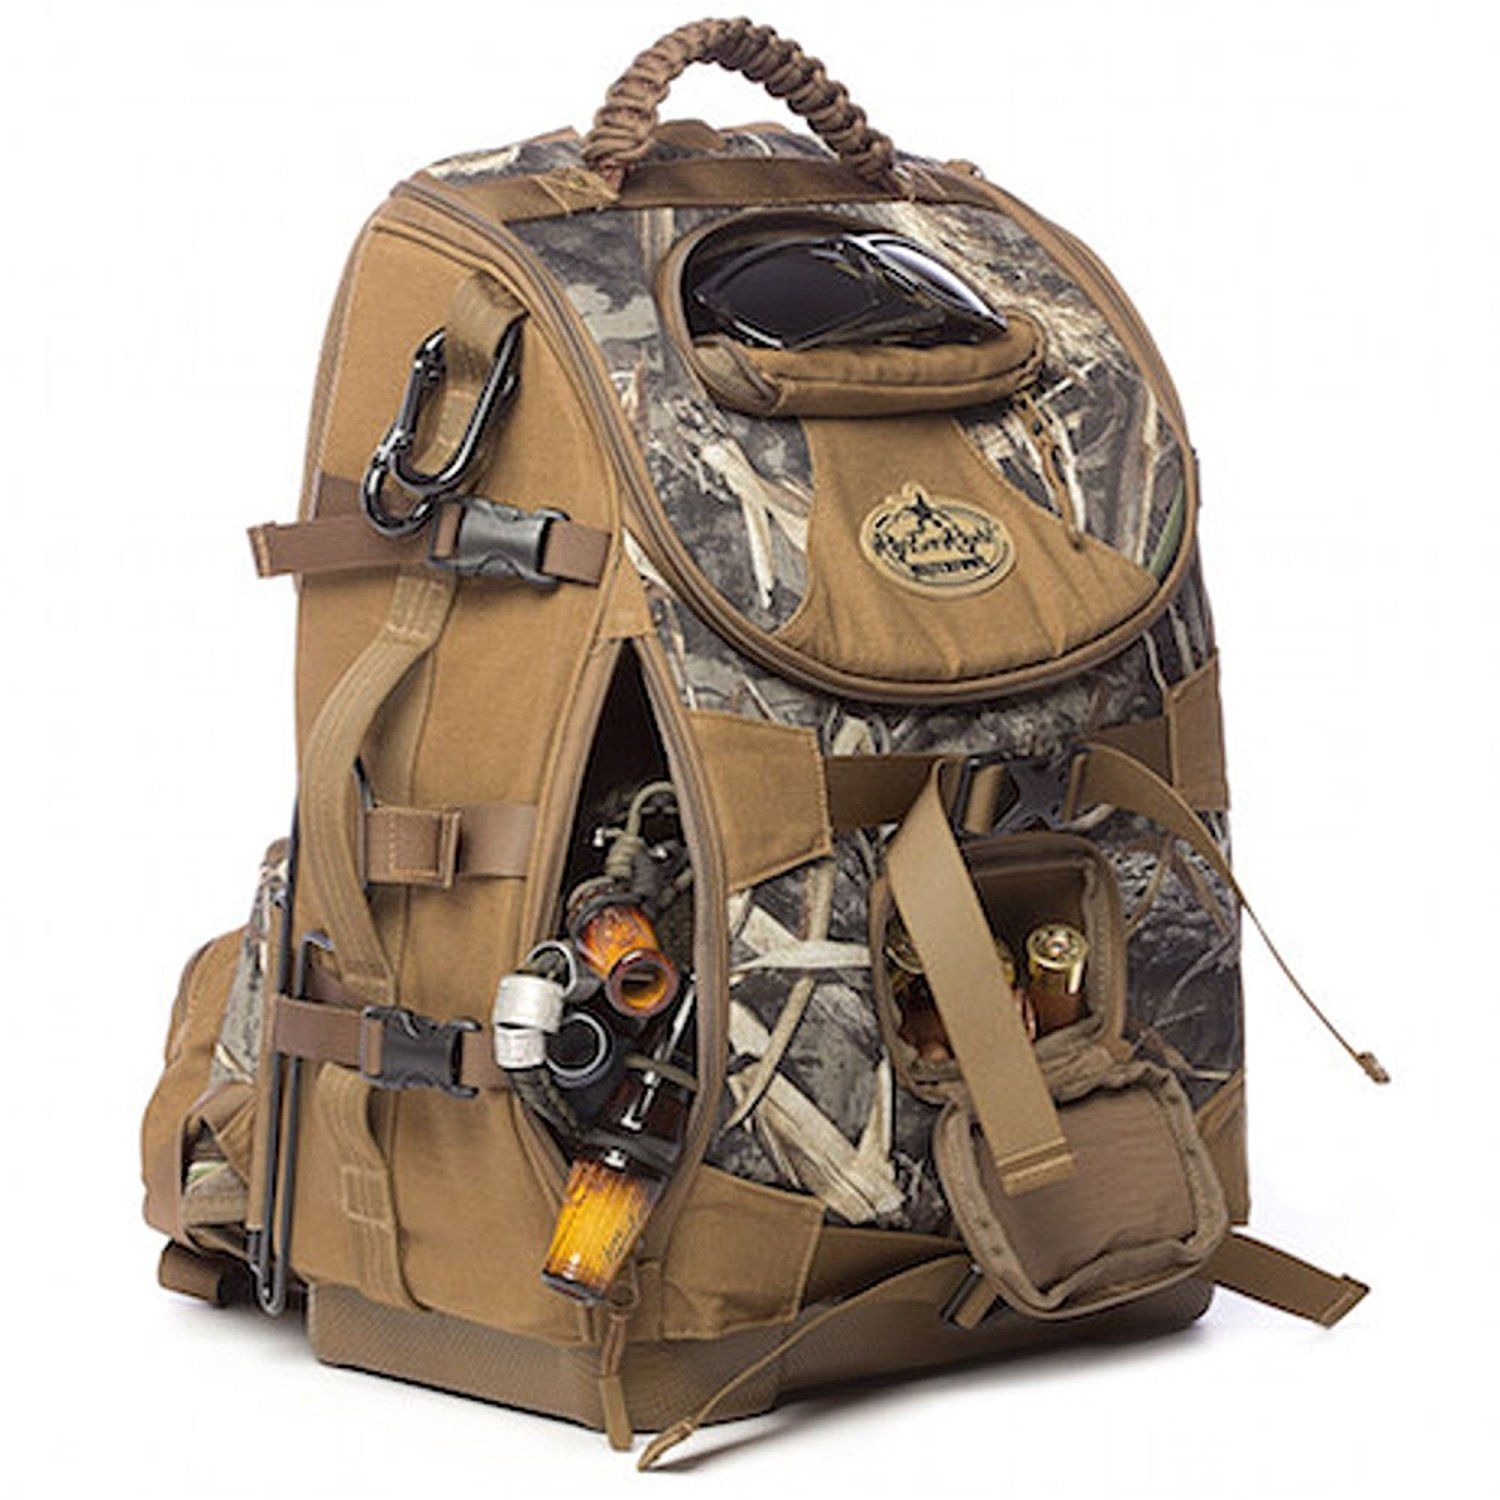 Rig Em Right Mudslinger Floating Hunting Backpack Max5 300 Startling Review Available Here Camping Gear Hunting Backpacks Backpacks Women S Belt Bag